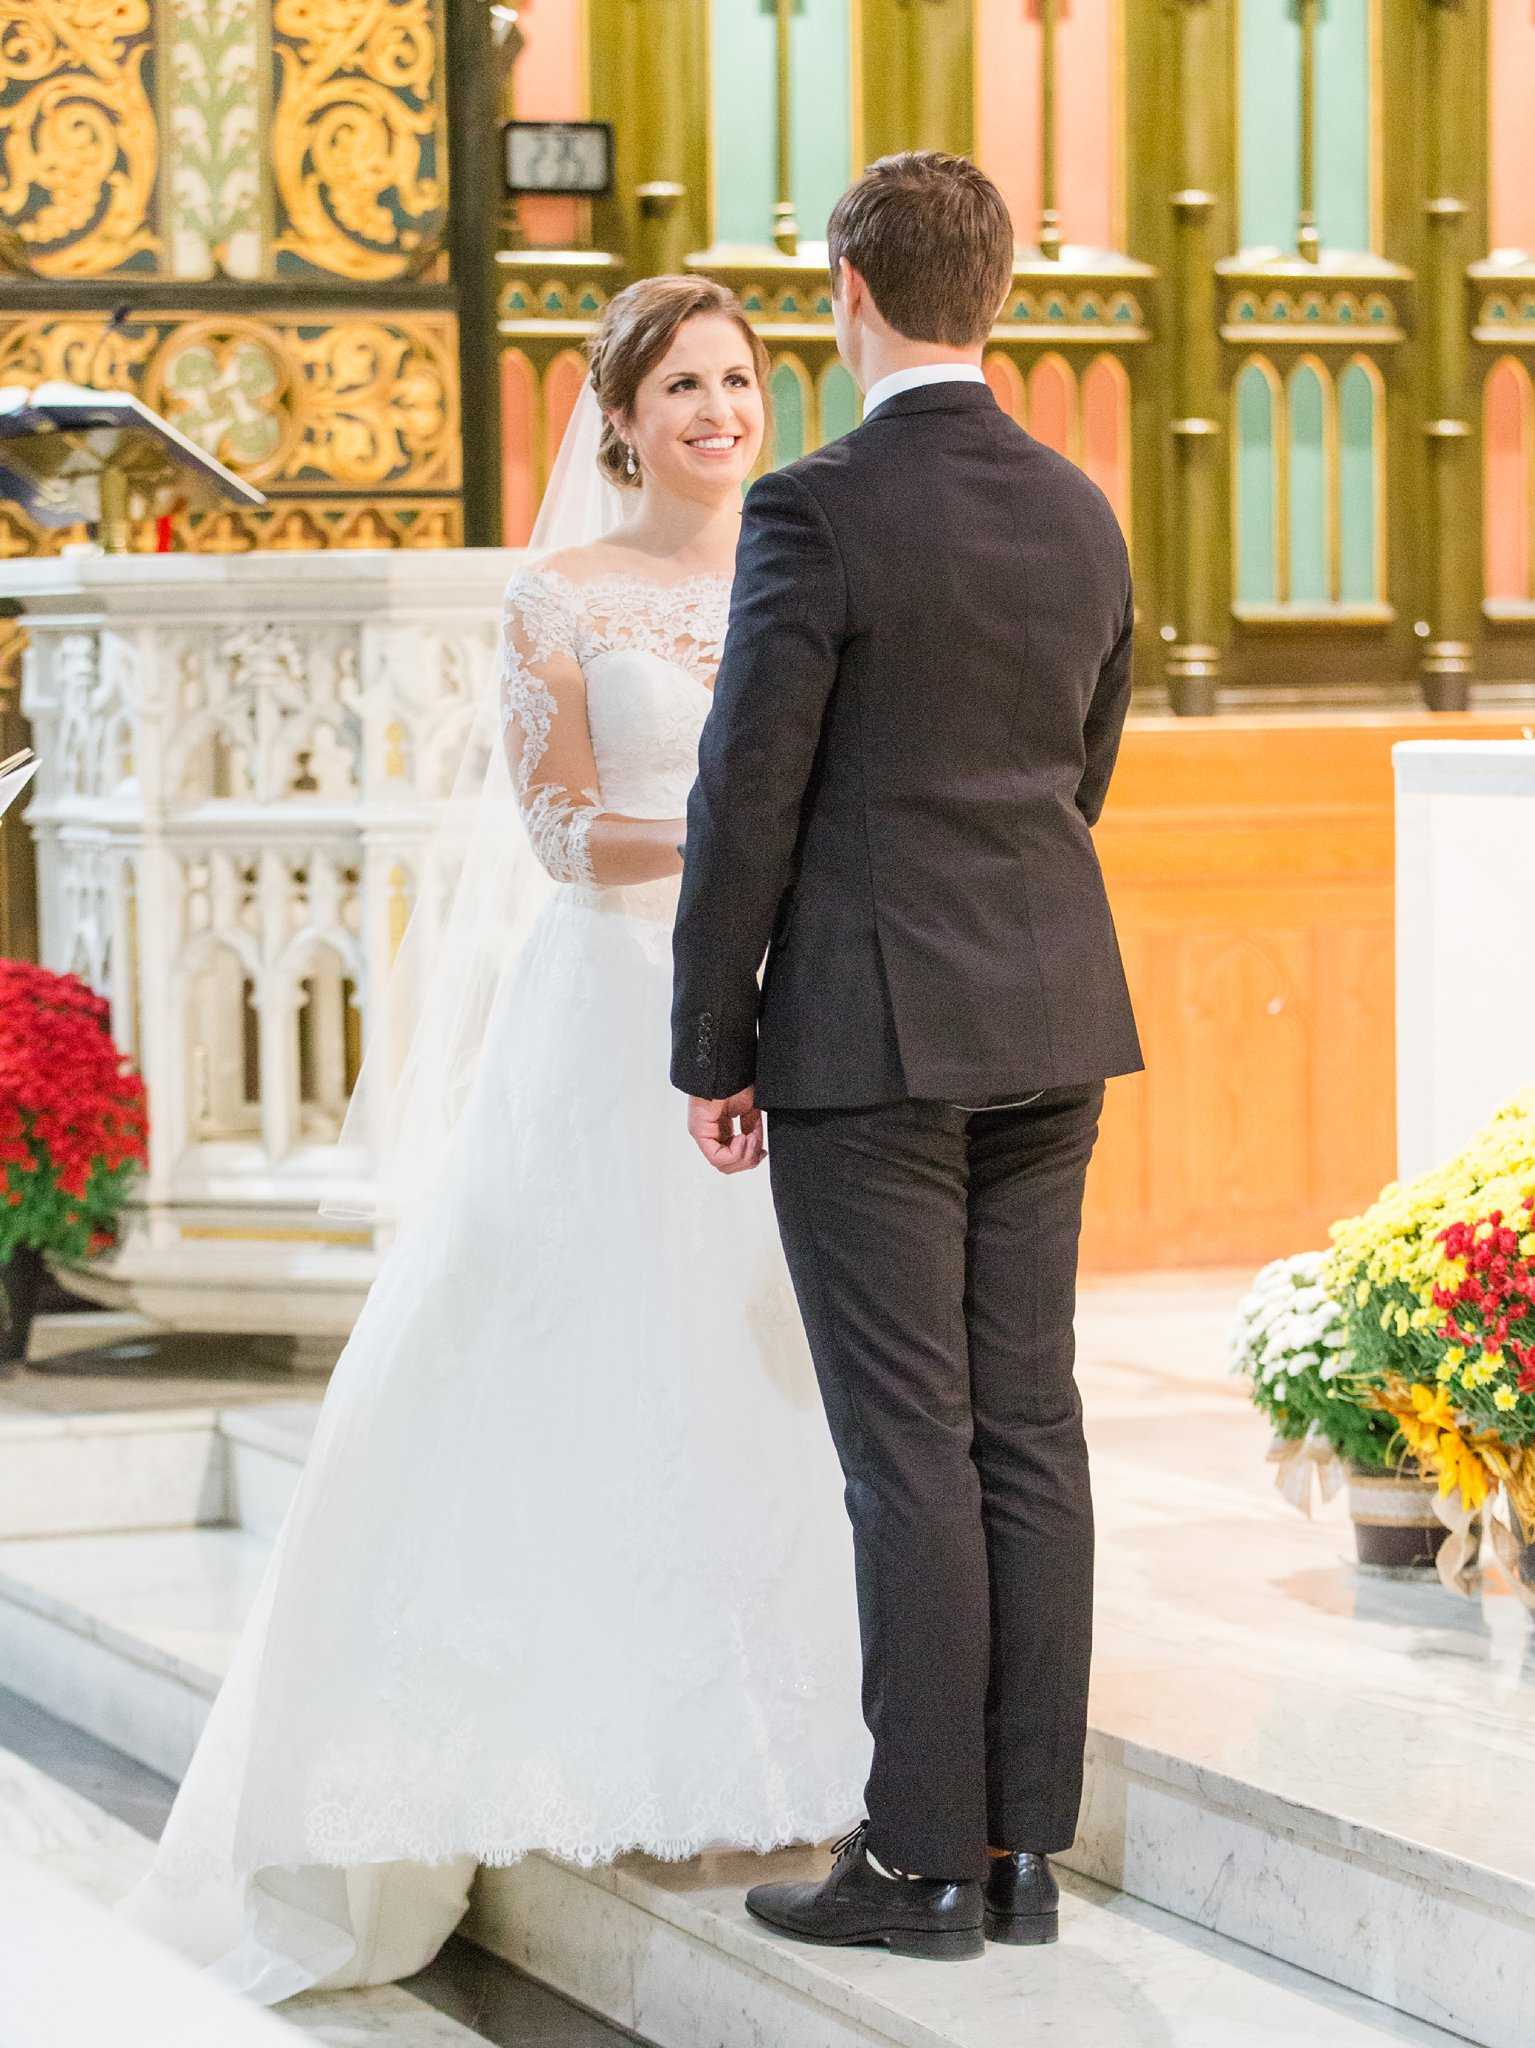 Exchanging vows A Festive Fall Wedding at the Canadian Museum of Nature